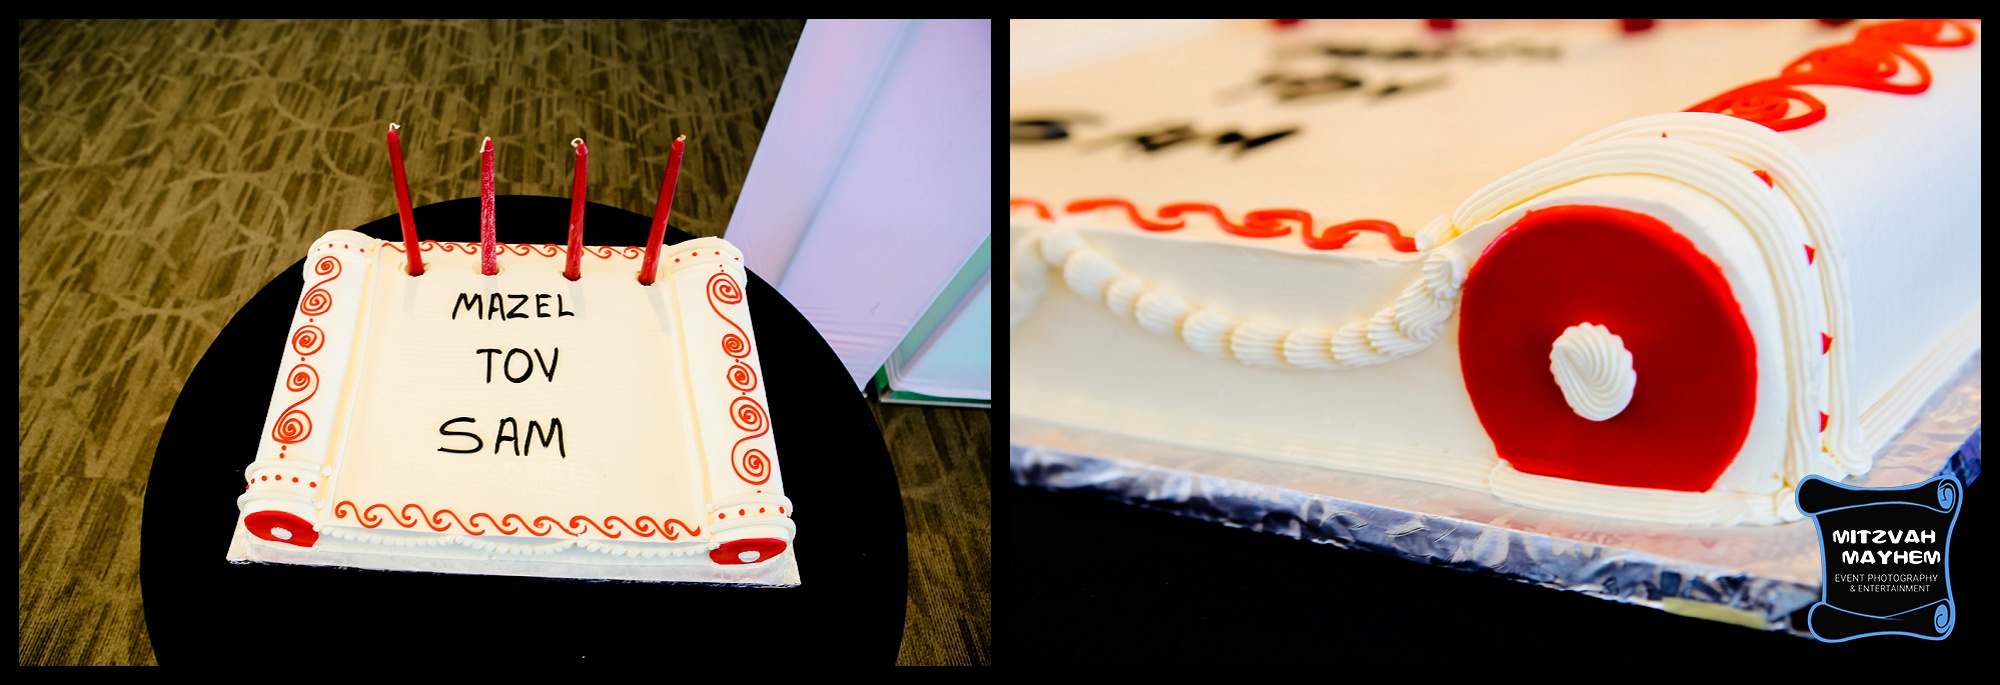 mercer-boathouse-mitzvah-nj-0033.jpg